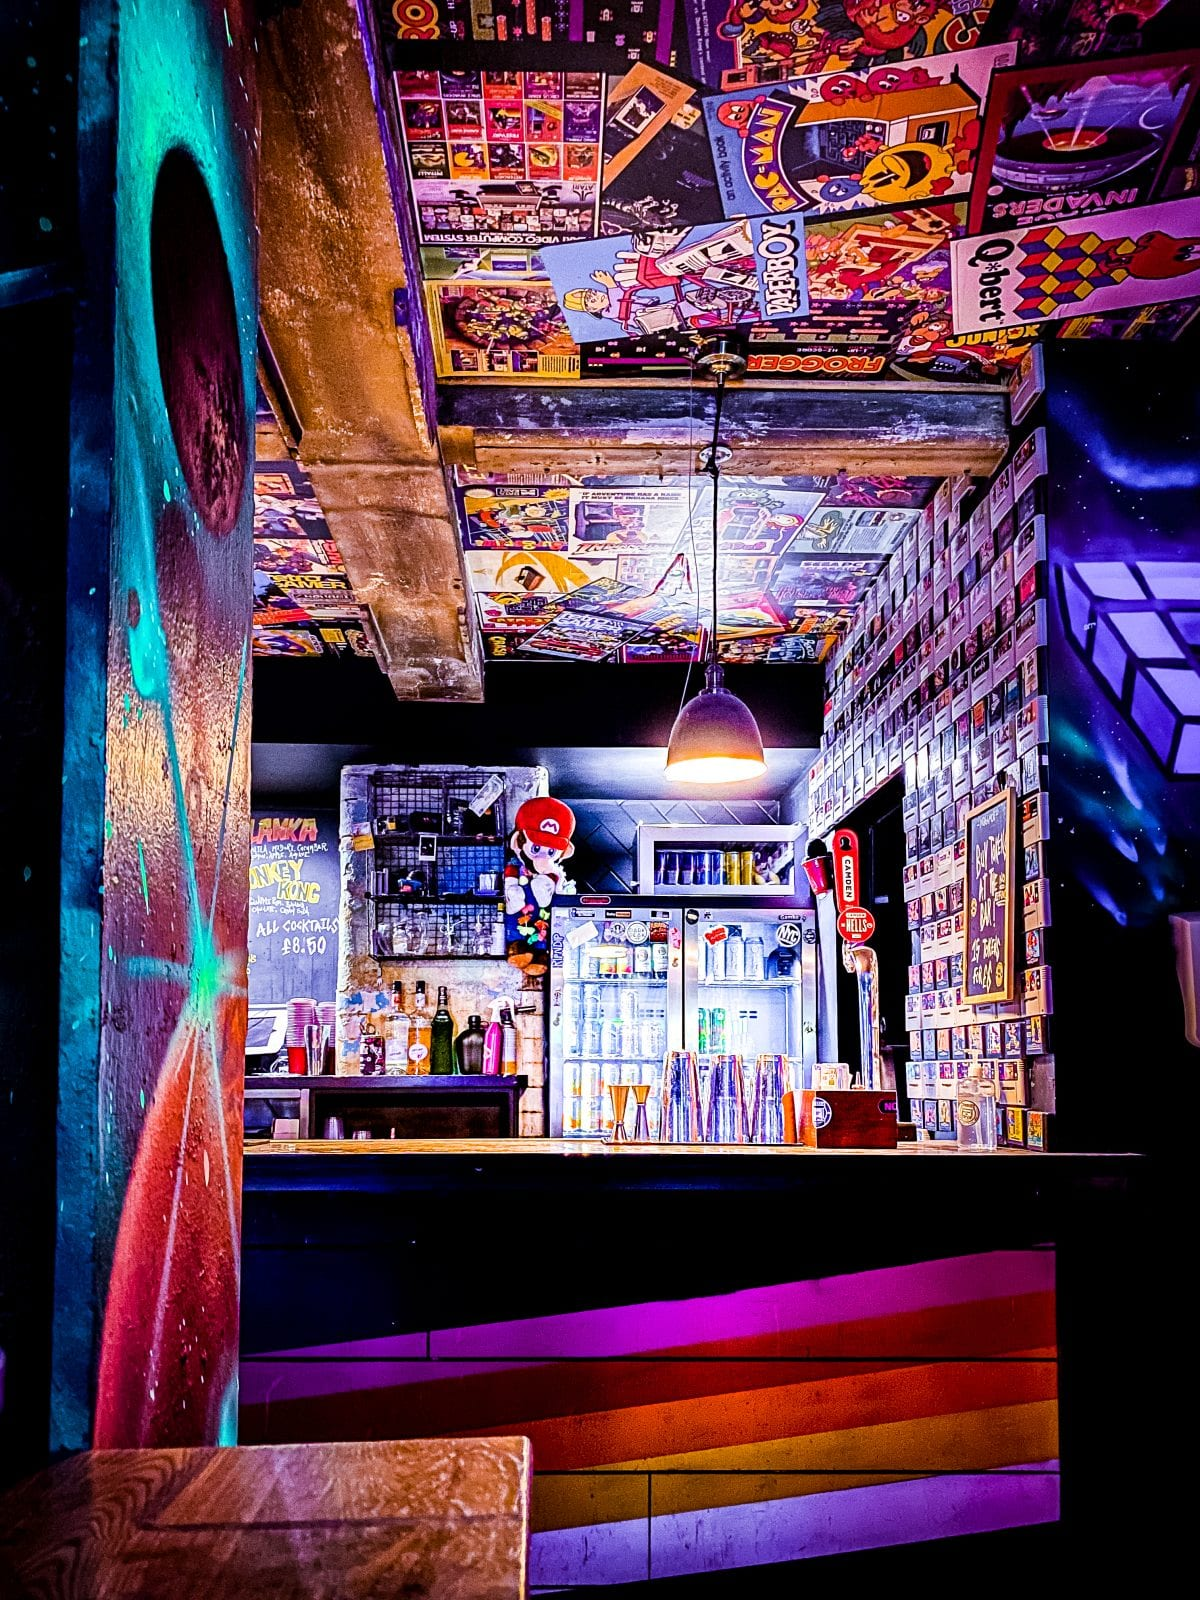 NQ64 release first images of new Peter Street venue opening in June, The Manc